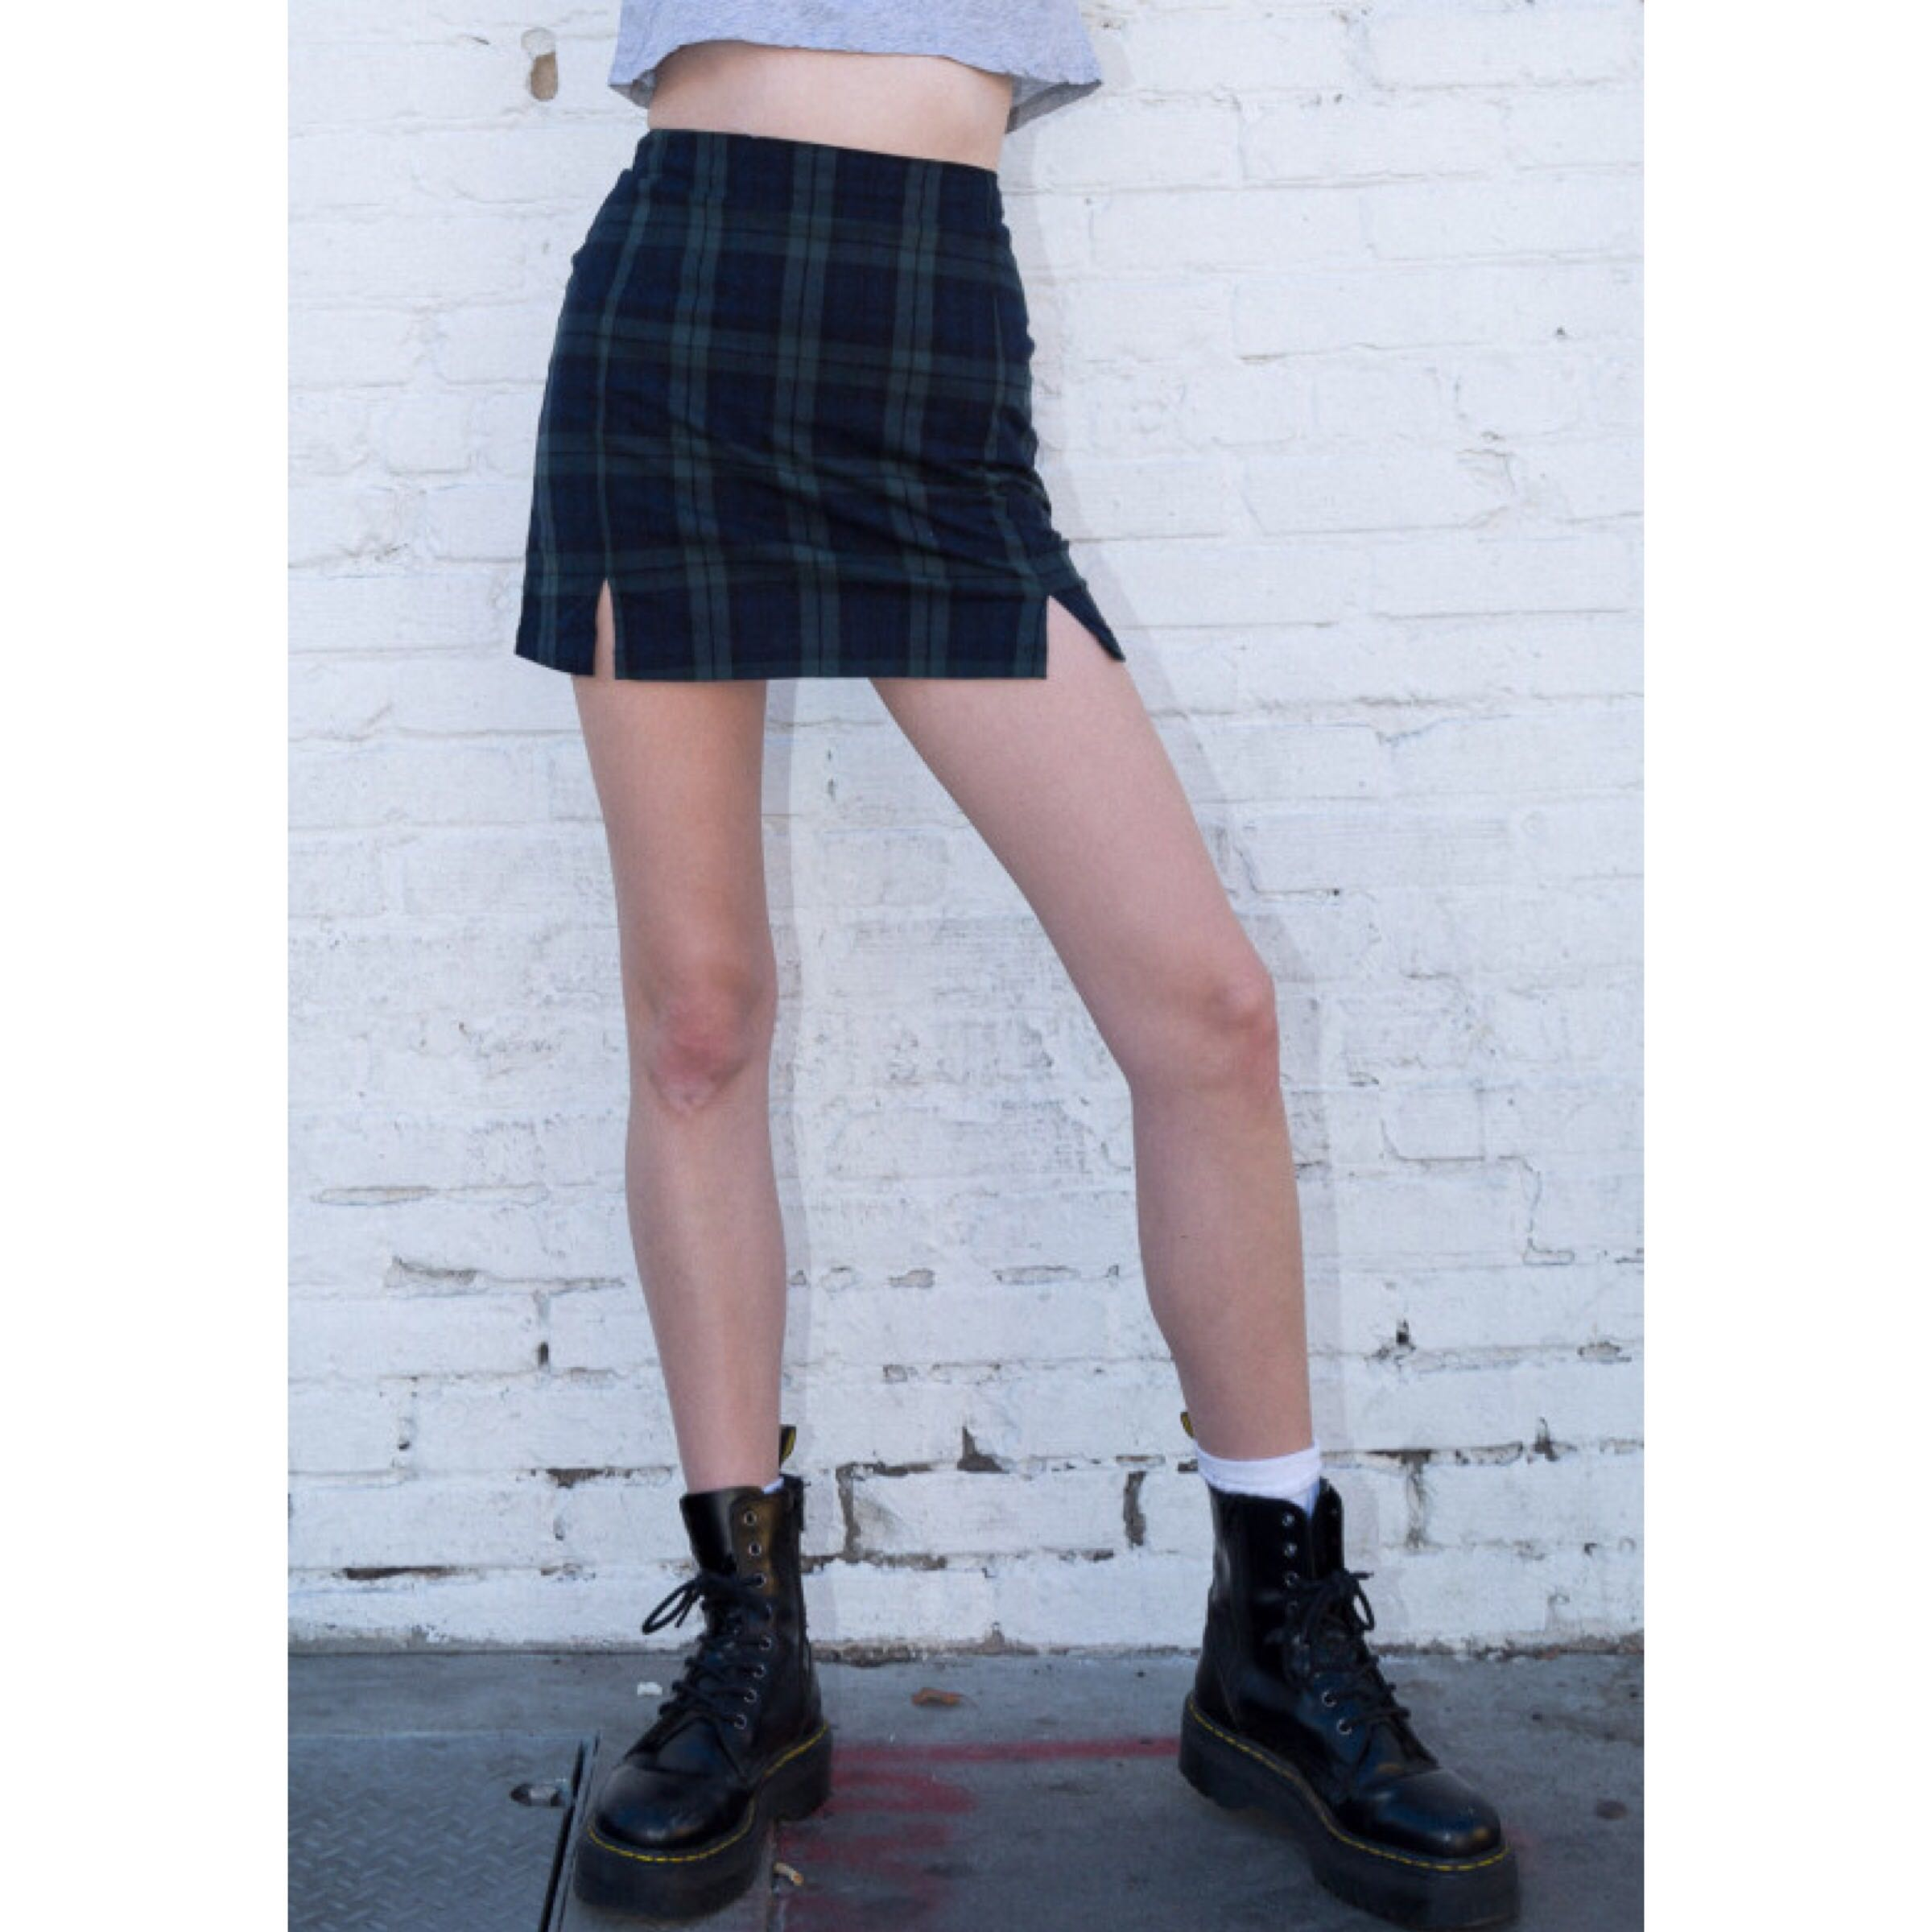 c9de30ef2b Brandy melville green plaid cara skirt, Women's Fashion, Clothes, Dresses &  Skirts on Carousell